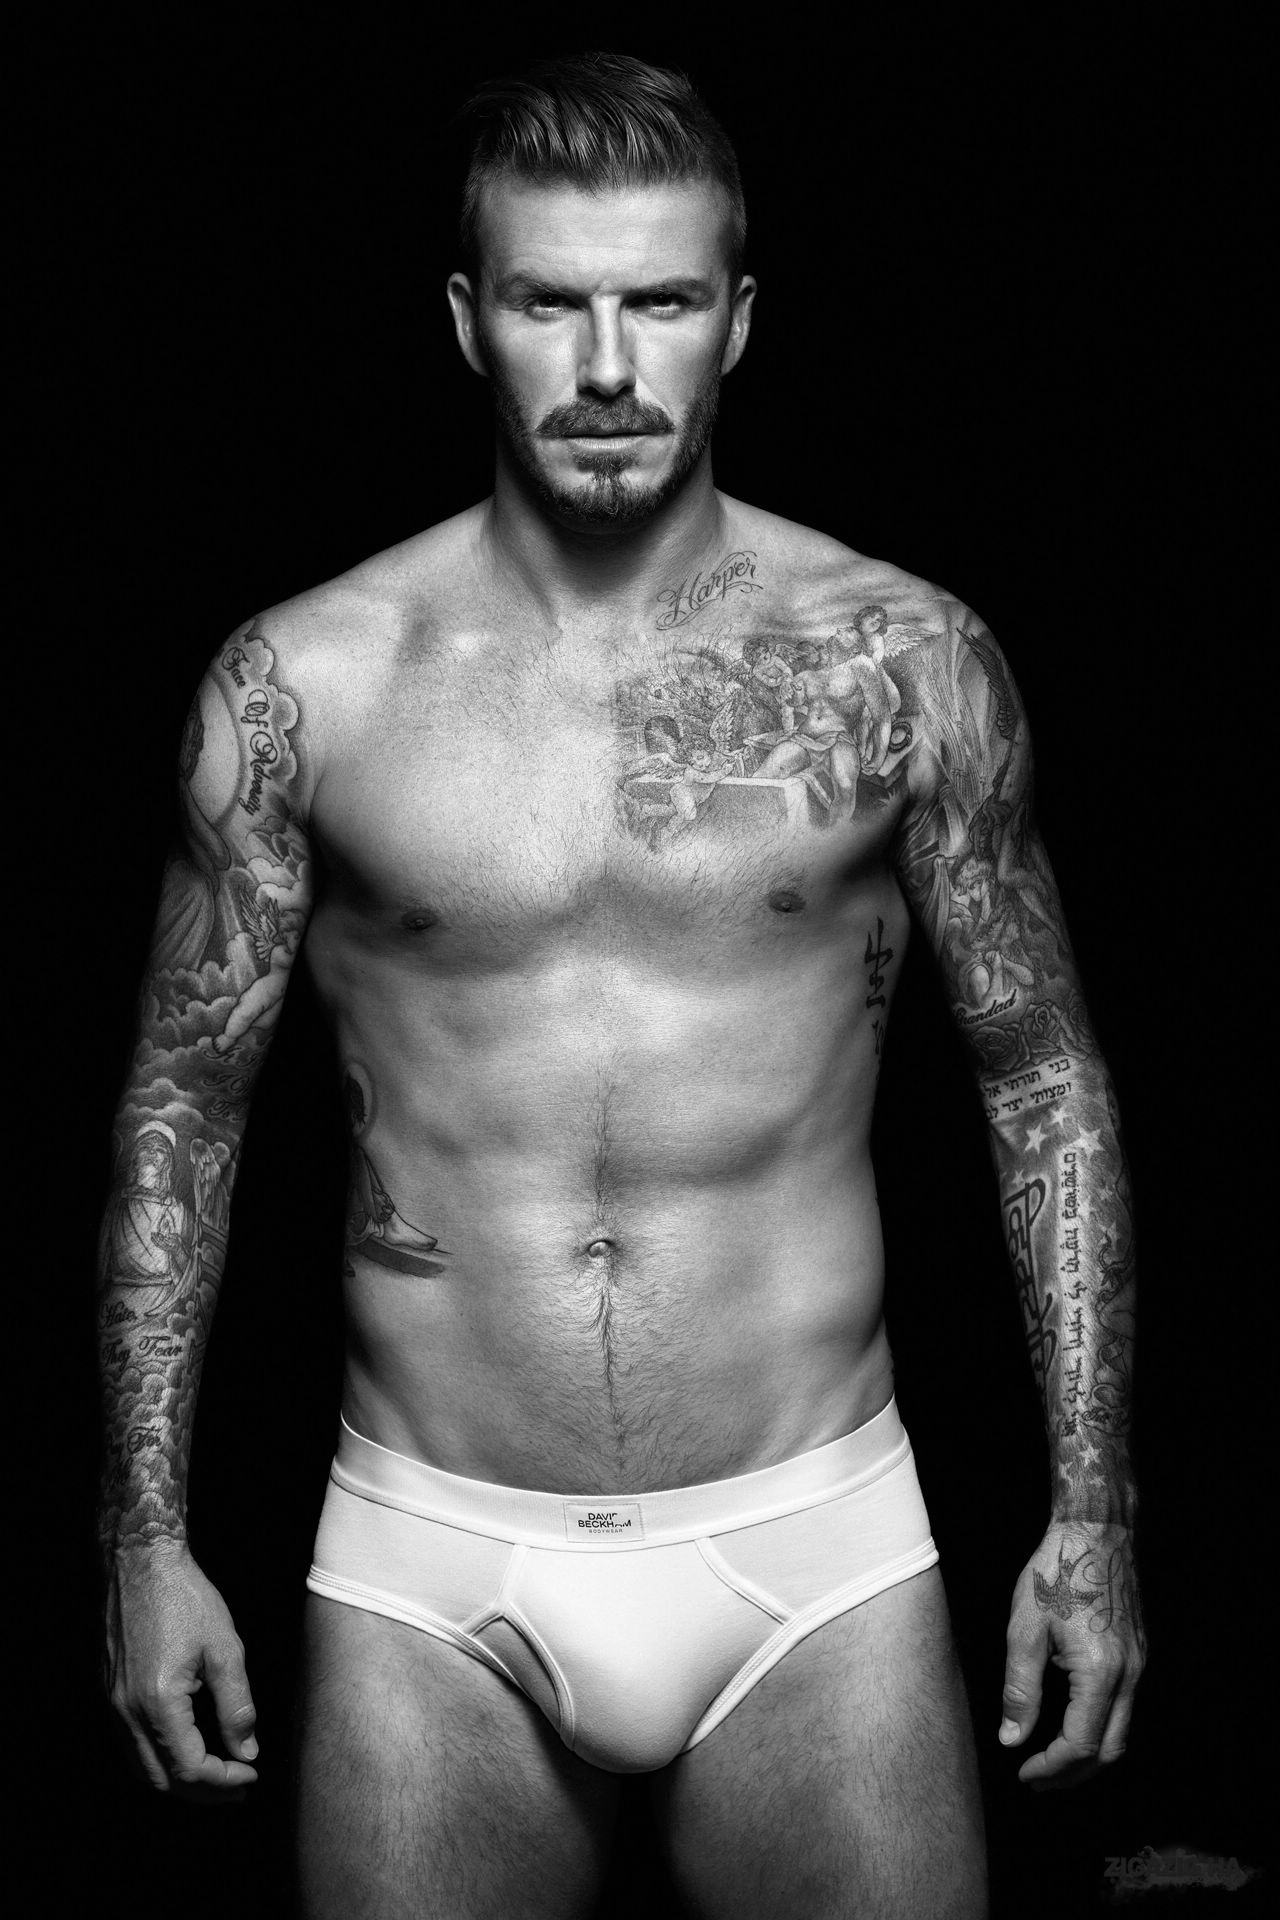 David Beckham David Beckham  H M Underwear   Second Collection   2012